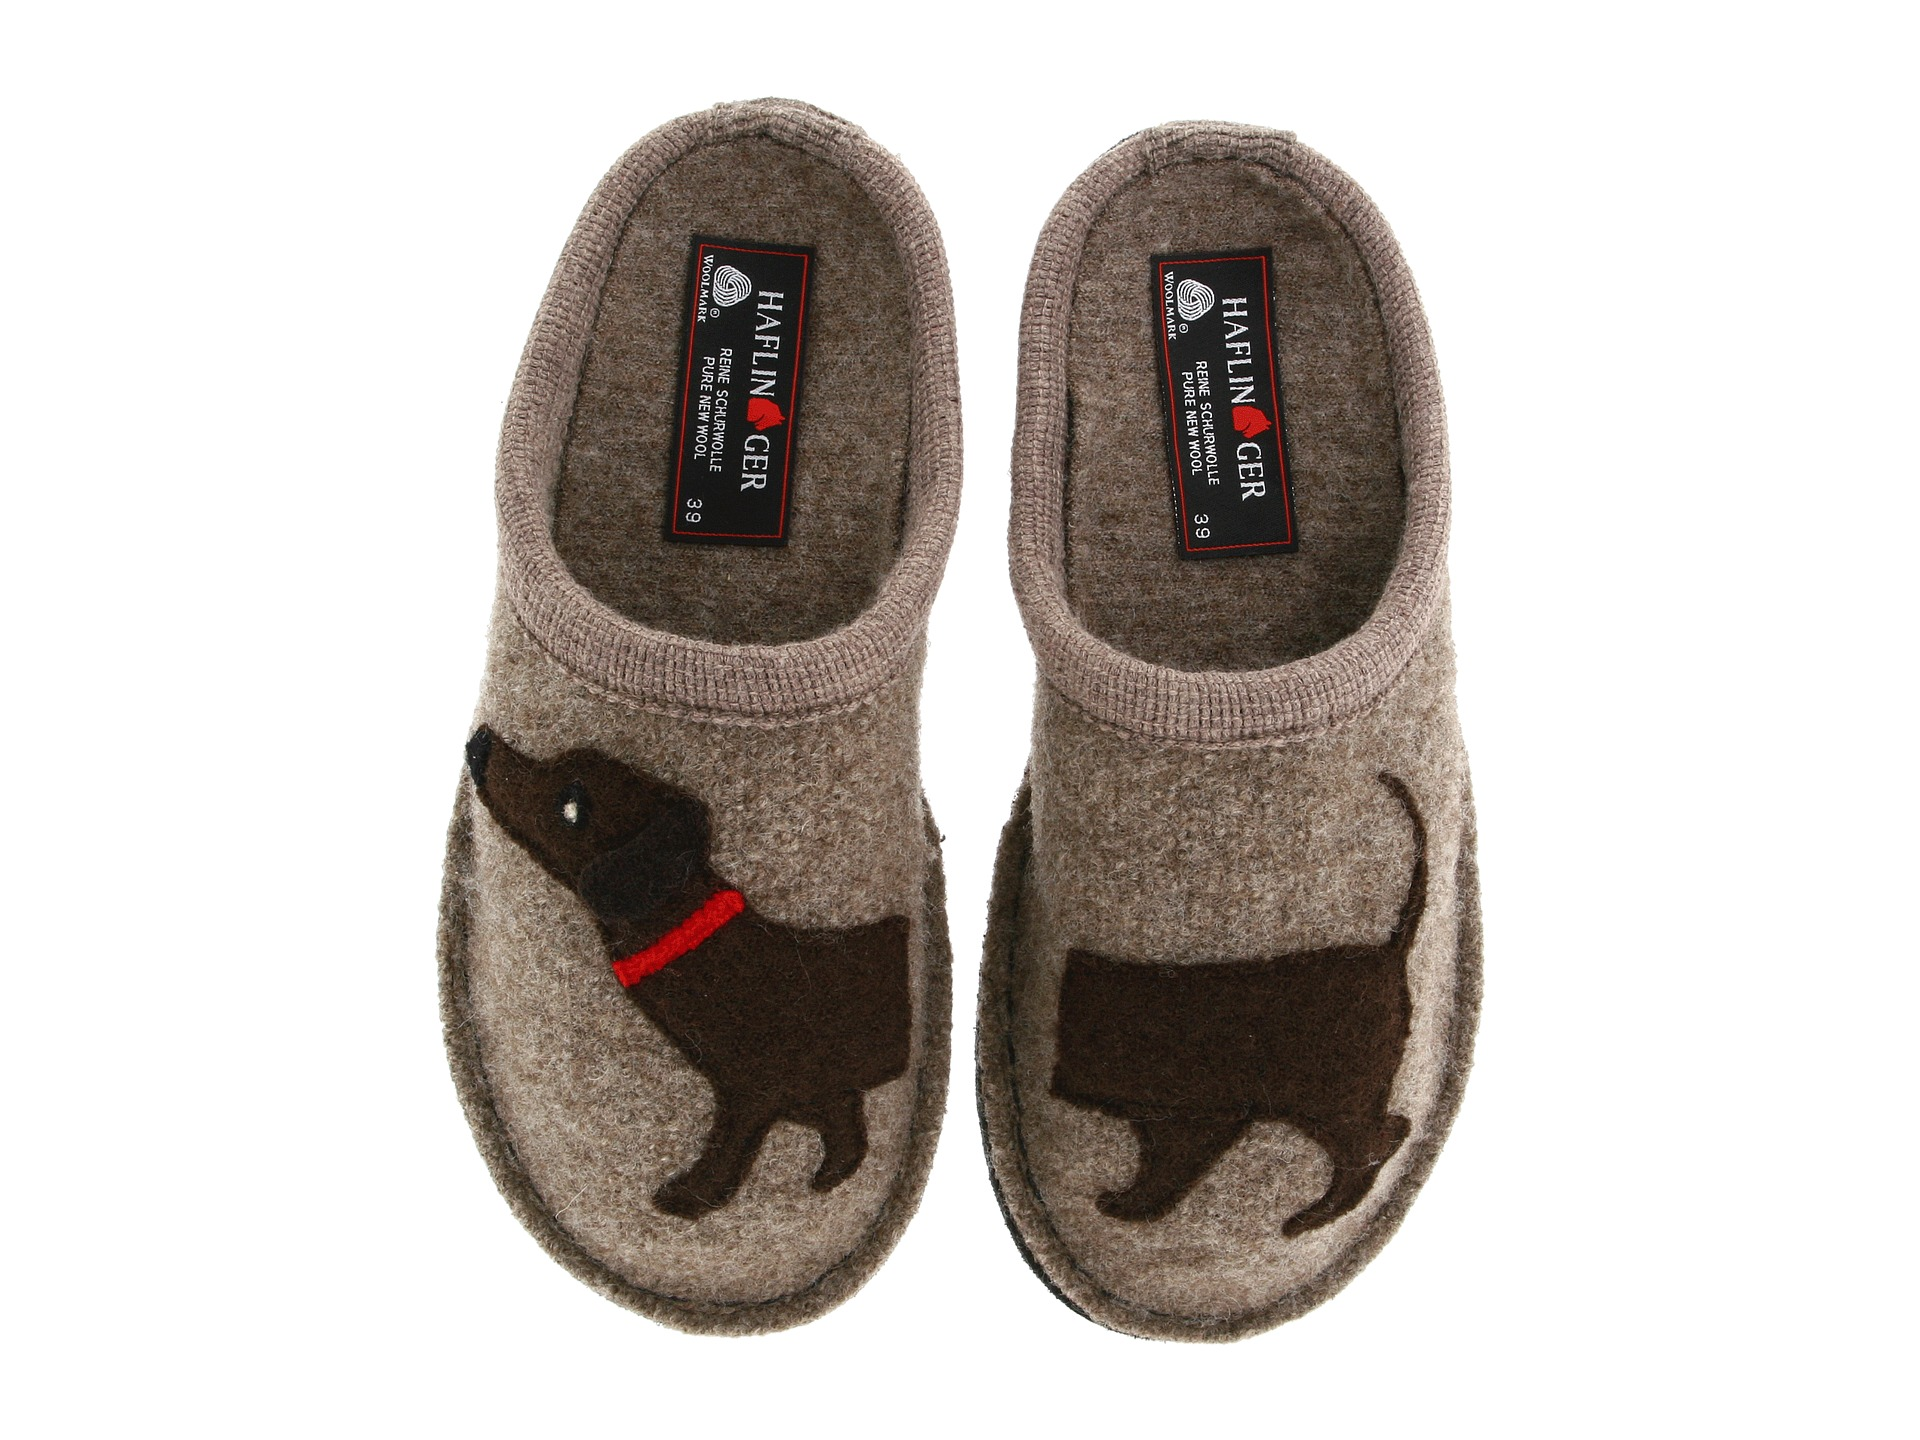 Slippers | Indoor Shoes Protect your dog's paws inside the house. There is nothing more adorable than dogs wearing slippers. Cuteness aside, your dog's paws can get cold just like our feet get cold on a winter day, especially if your house has hardwood or tile floors.